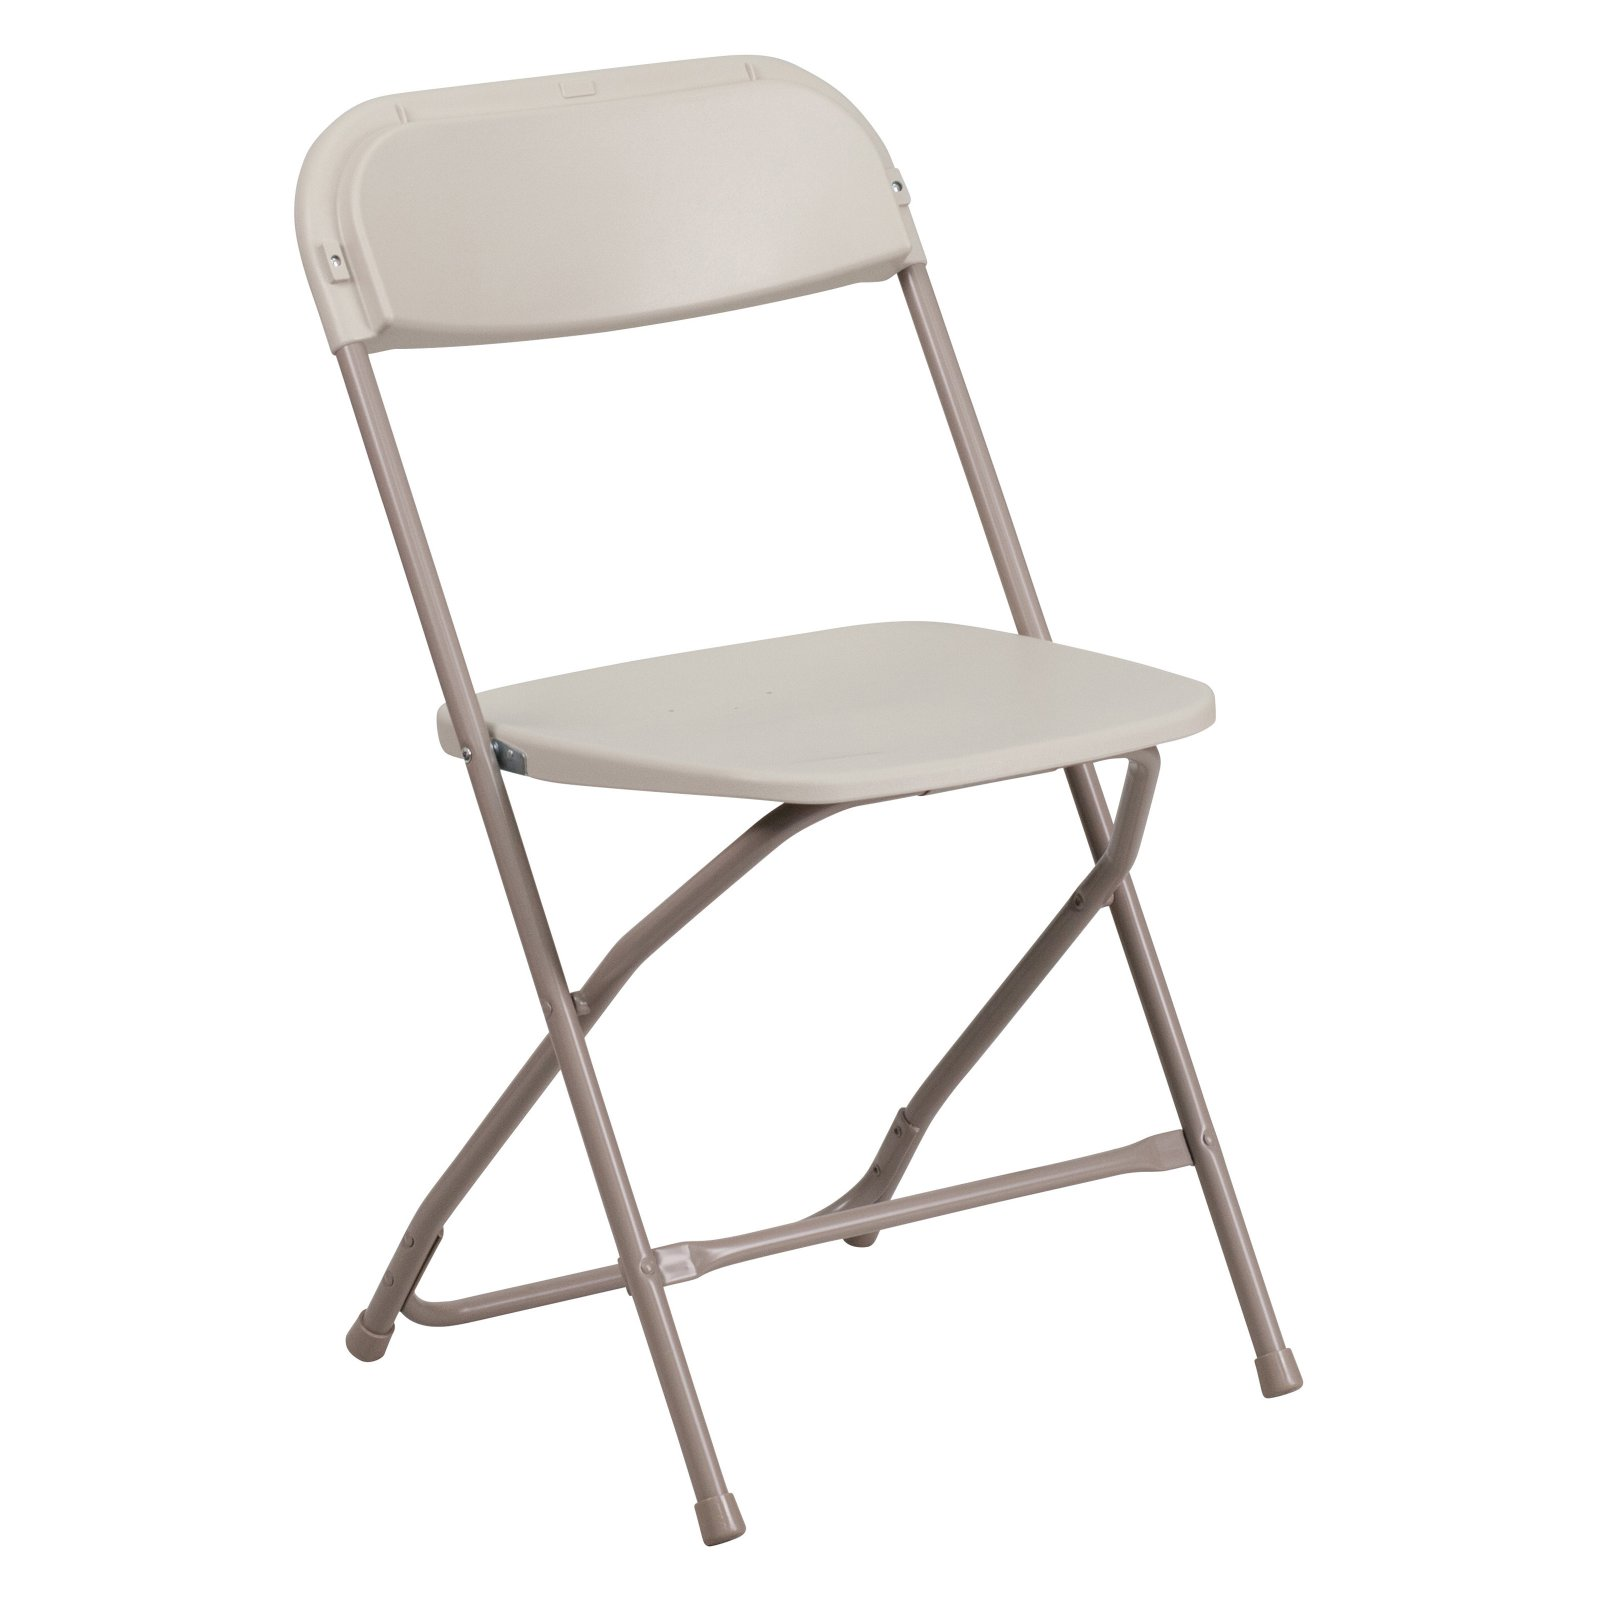 Flash Furniture HERCULES Series 800 lb Capacity Premium Plastic Folding Chair Multiple Colors  sc 1 st  Walmart.com & Flash Furniture HERCULES Series 800 lb Capacity Premium Plastic ...